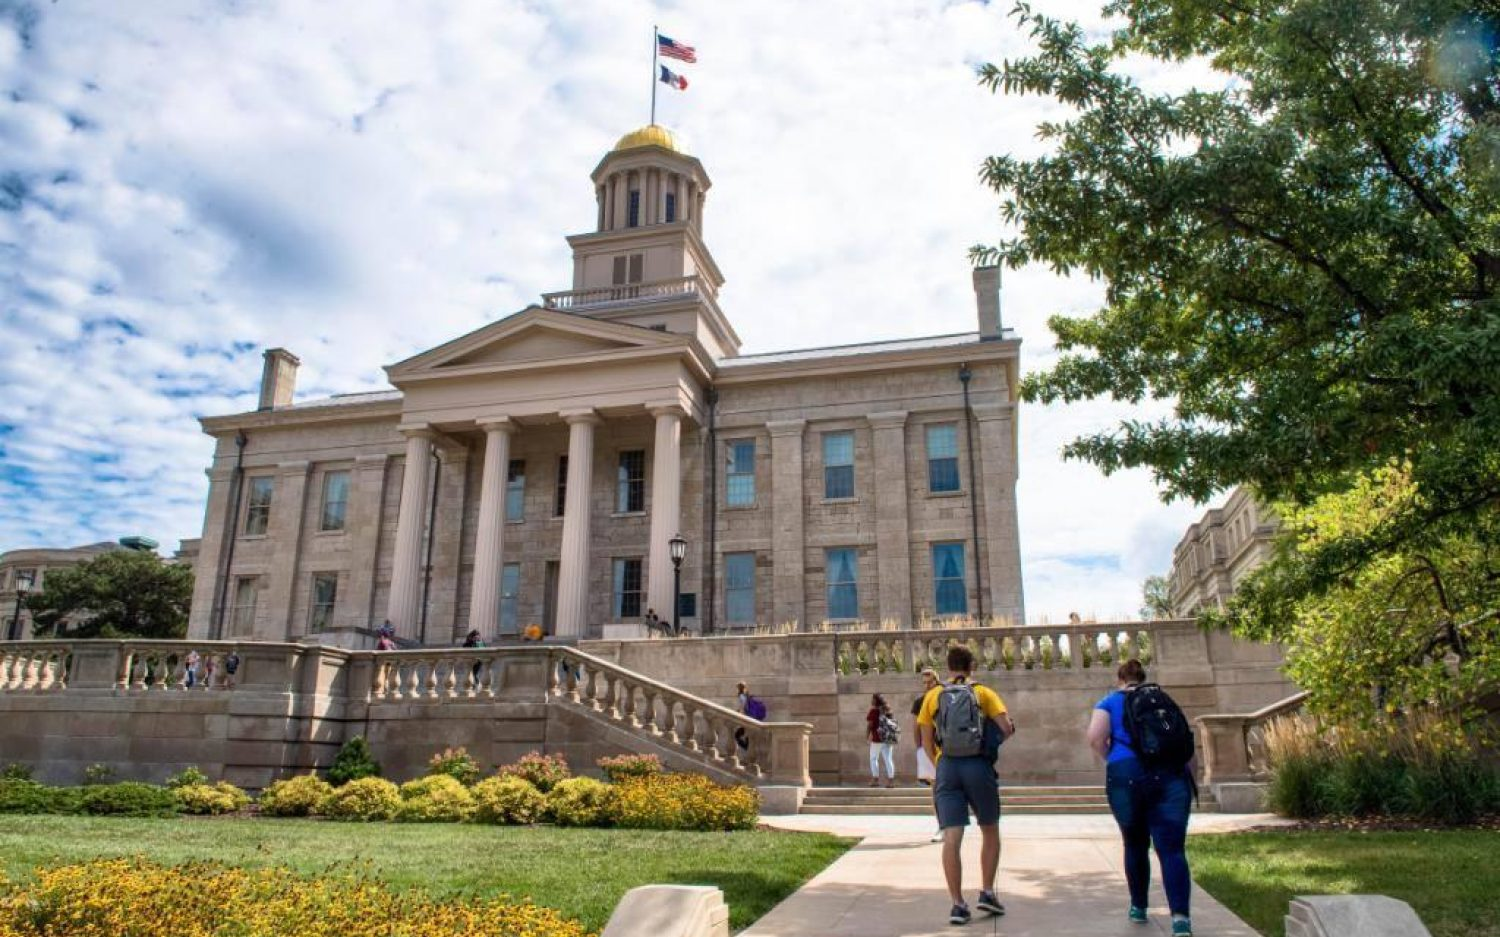 University of Iowa forces Christian group off campus